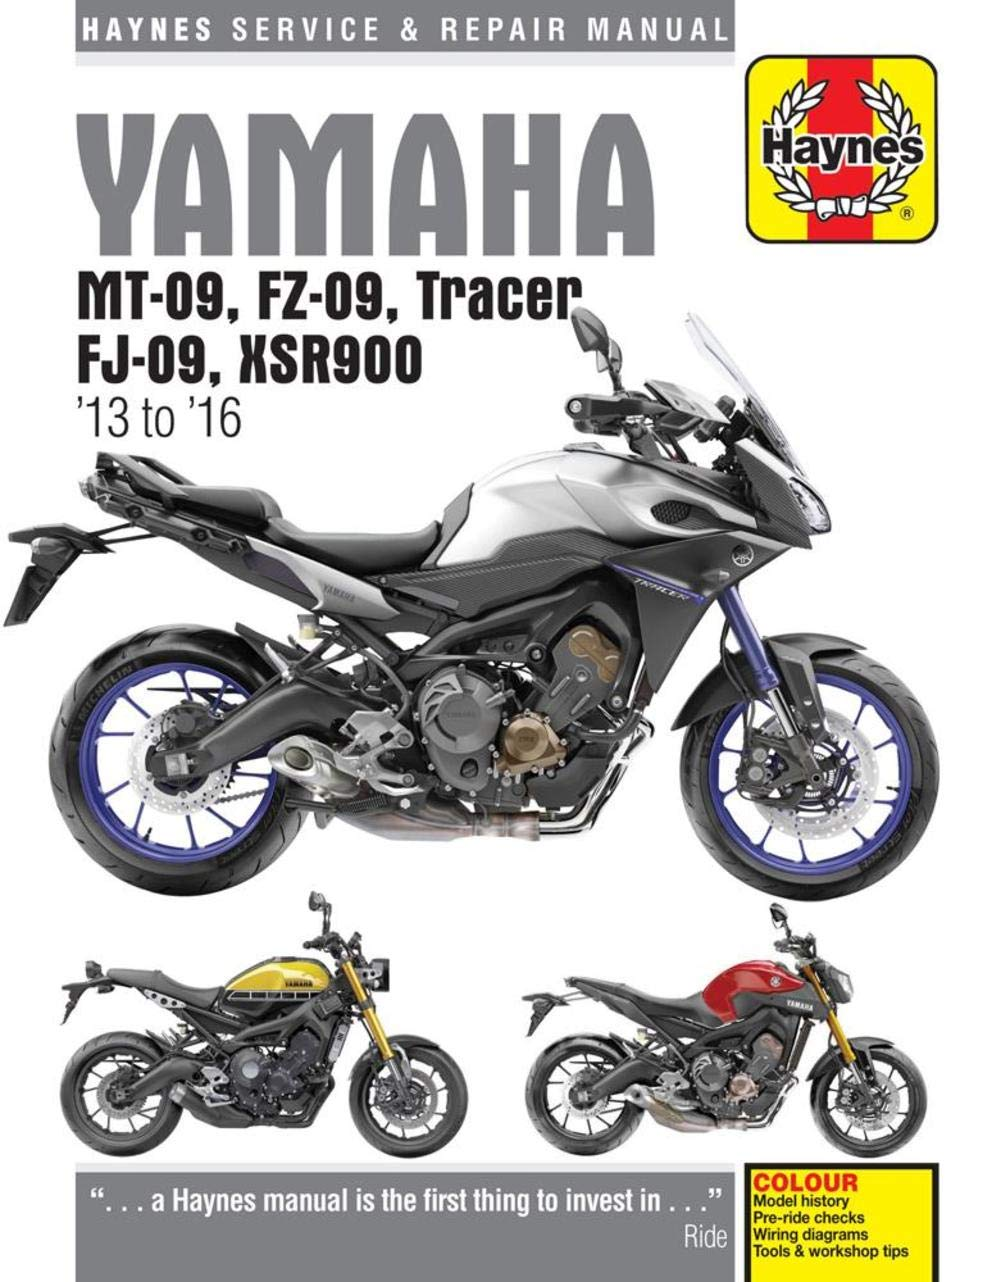 Amazon.com: Haynes Yamaha MT-09, FZ-09, Tracer FJ-09 & XSR900 Repair Manual  (2013-2016): Automotive